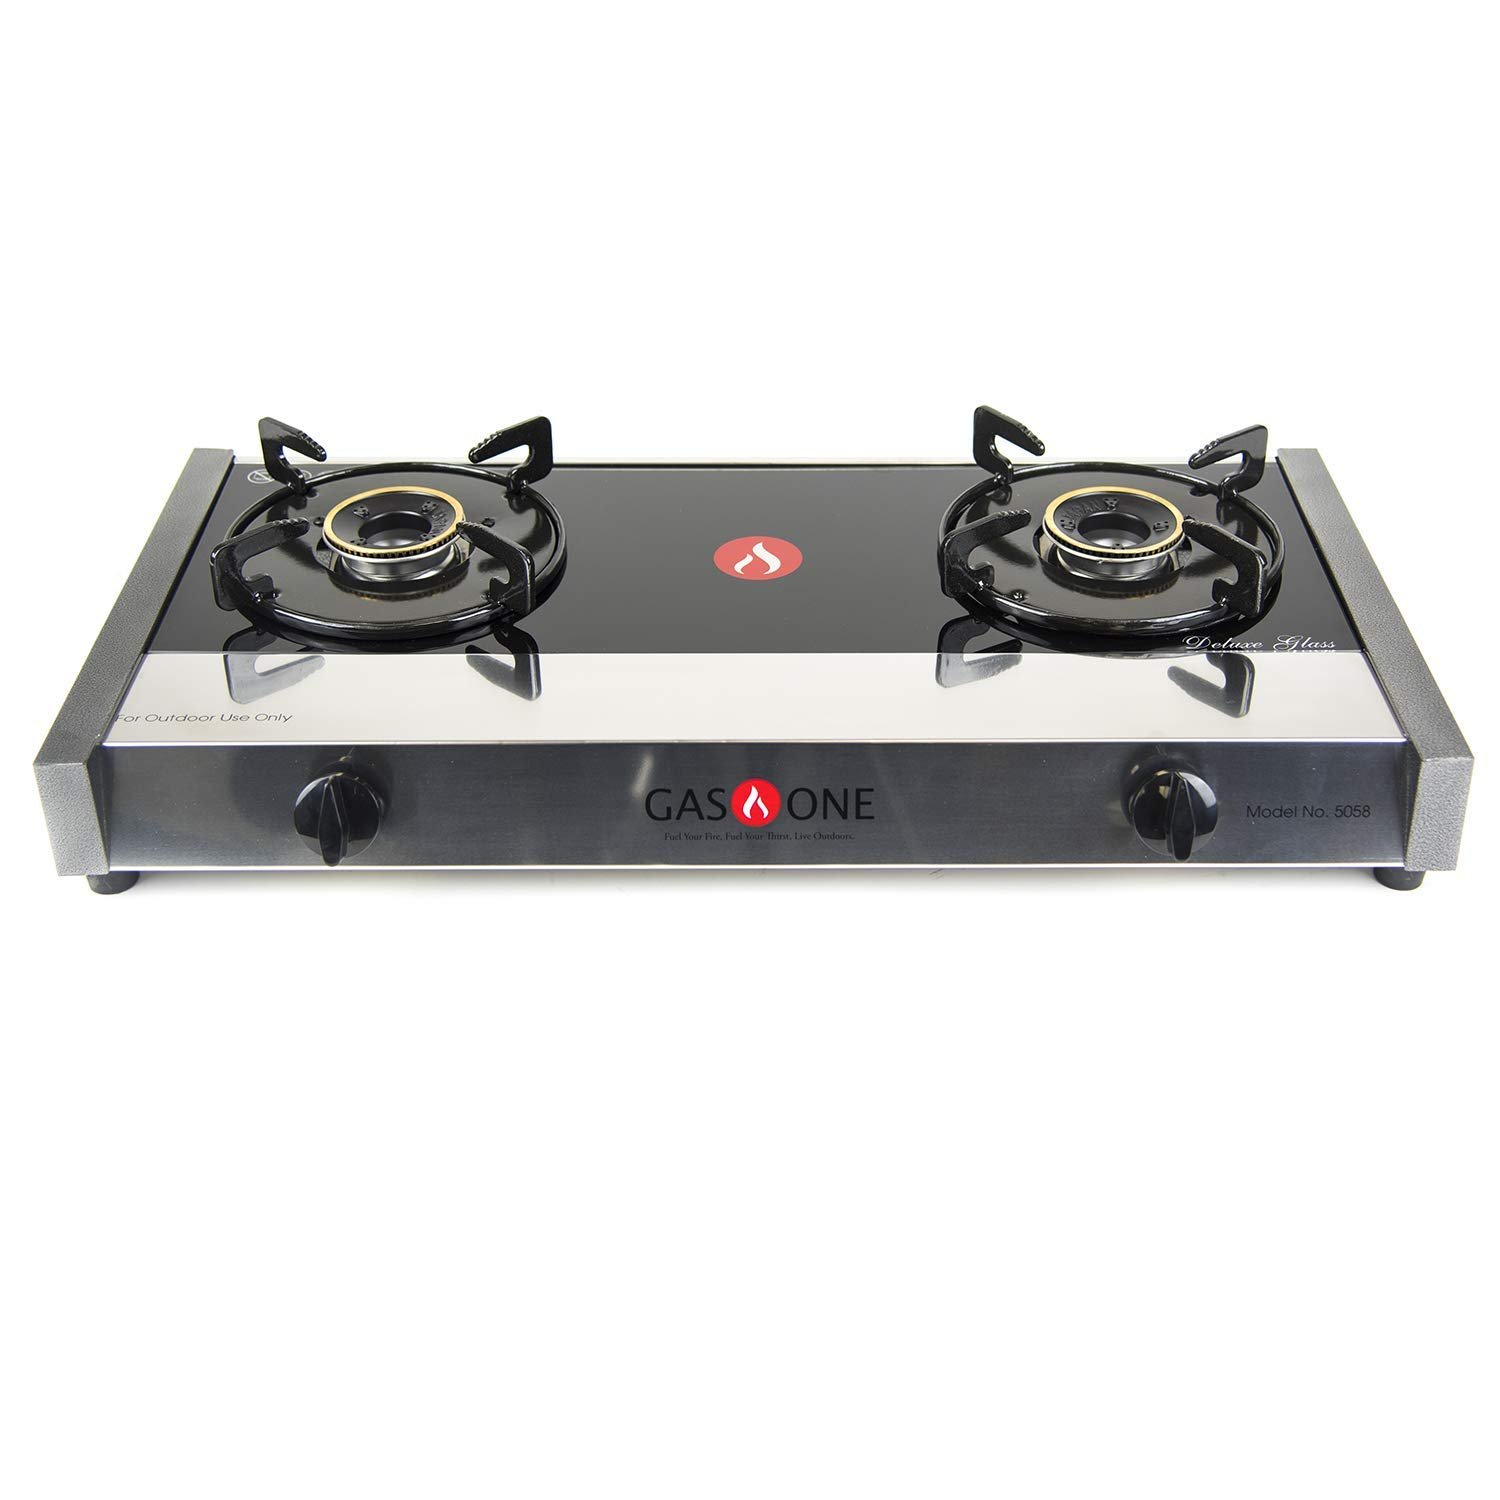 Gas One 5058 Premium Gas Stove Range with Propane Regulator-2 Burner Tempered Glass Cooktop Auto Ignition